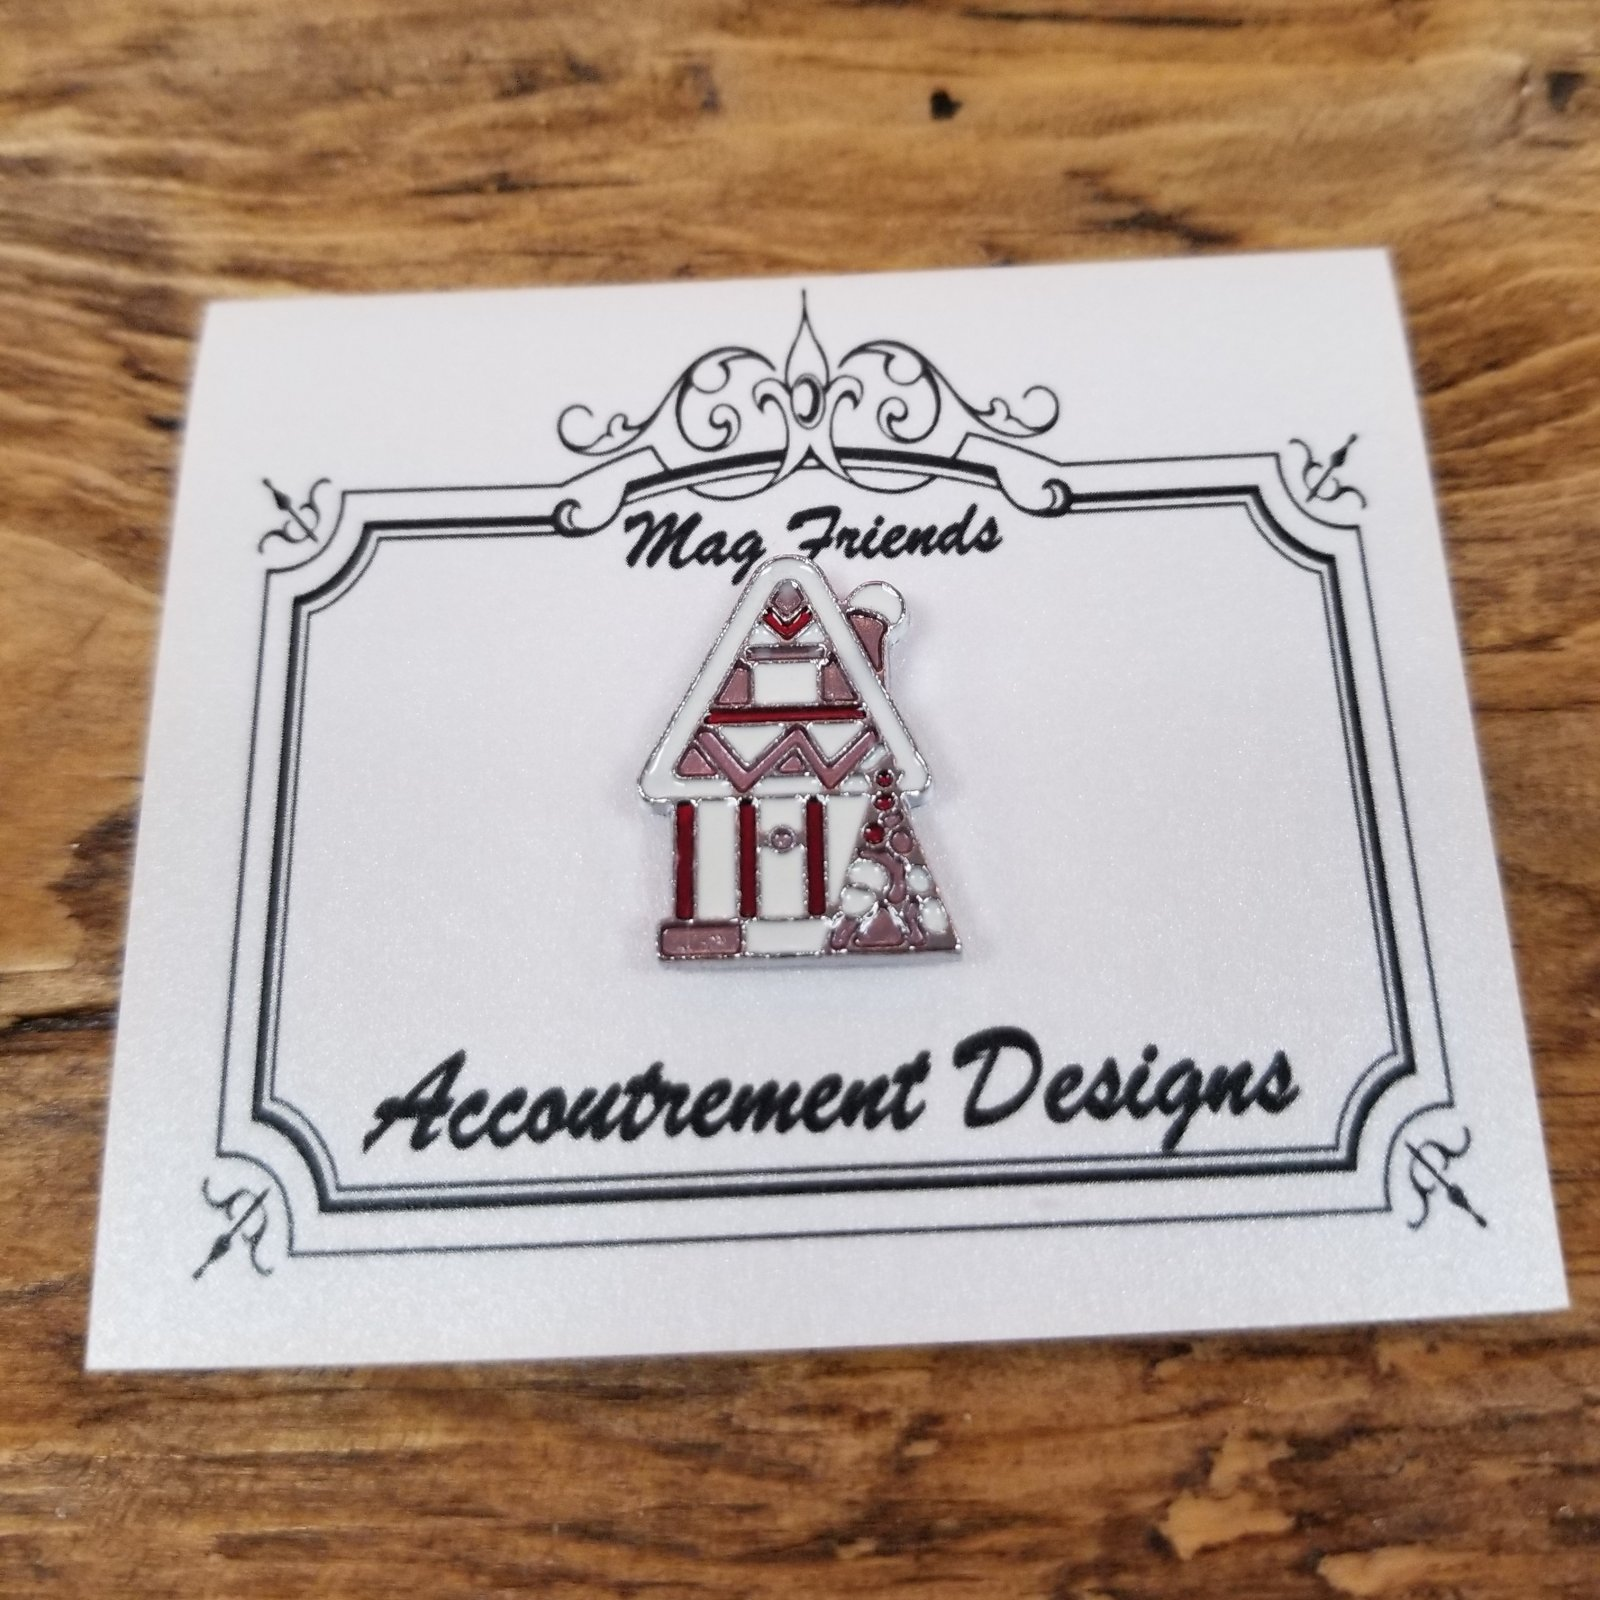 Accoutrement Designs Mag Friends